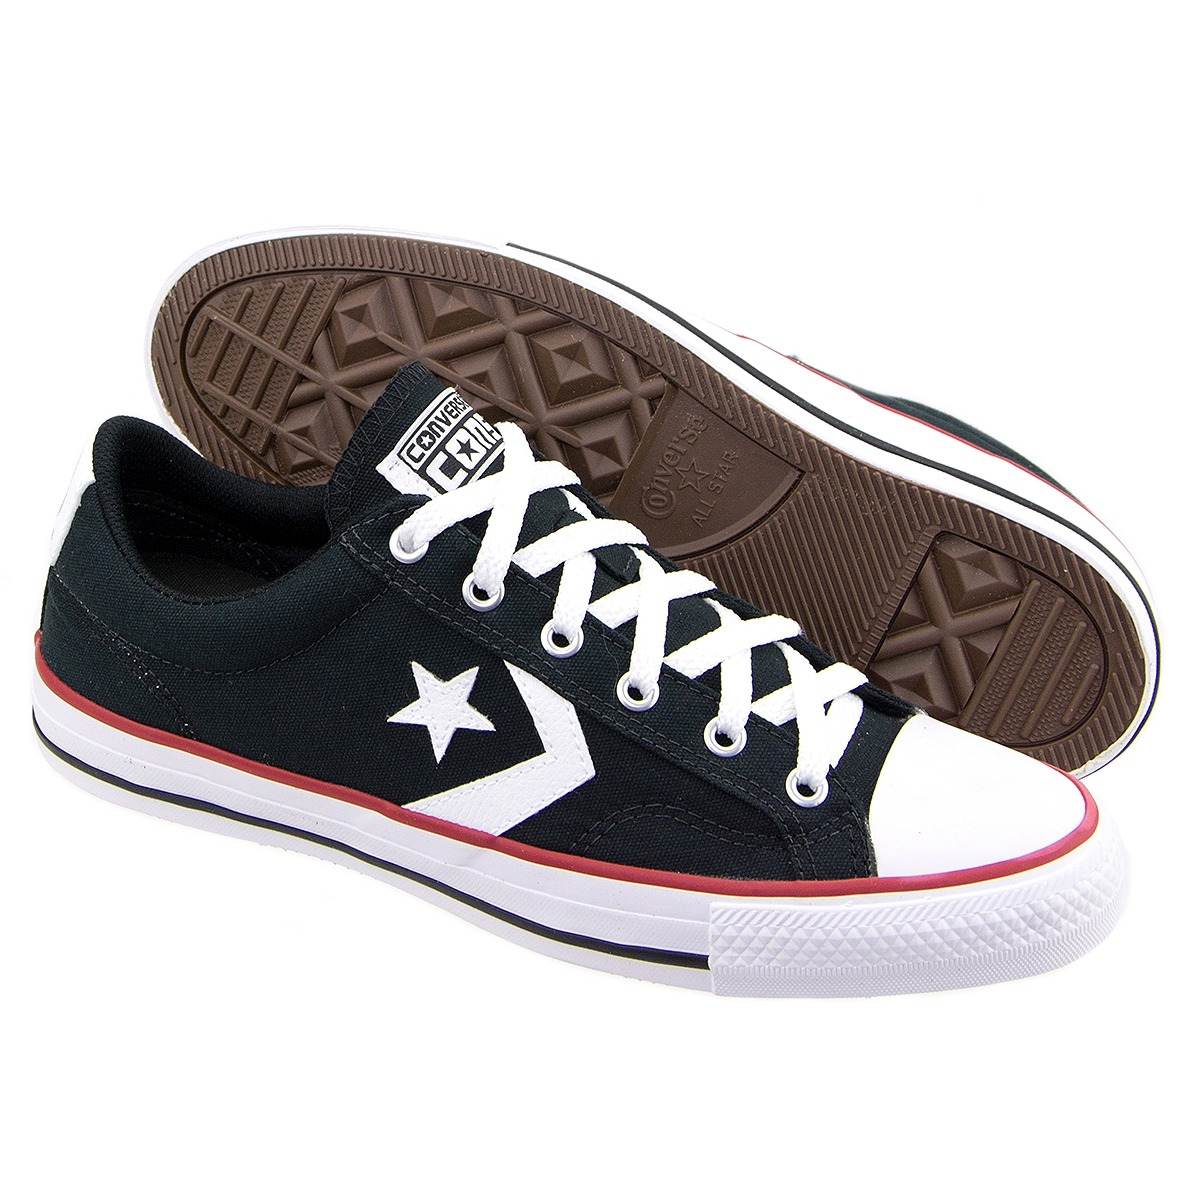 5dae9ed48 All Star Star Player Co 0136 - 100% Original - R$ 138,90 em Mercado ...